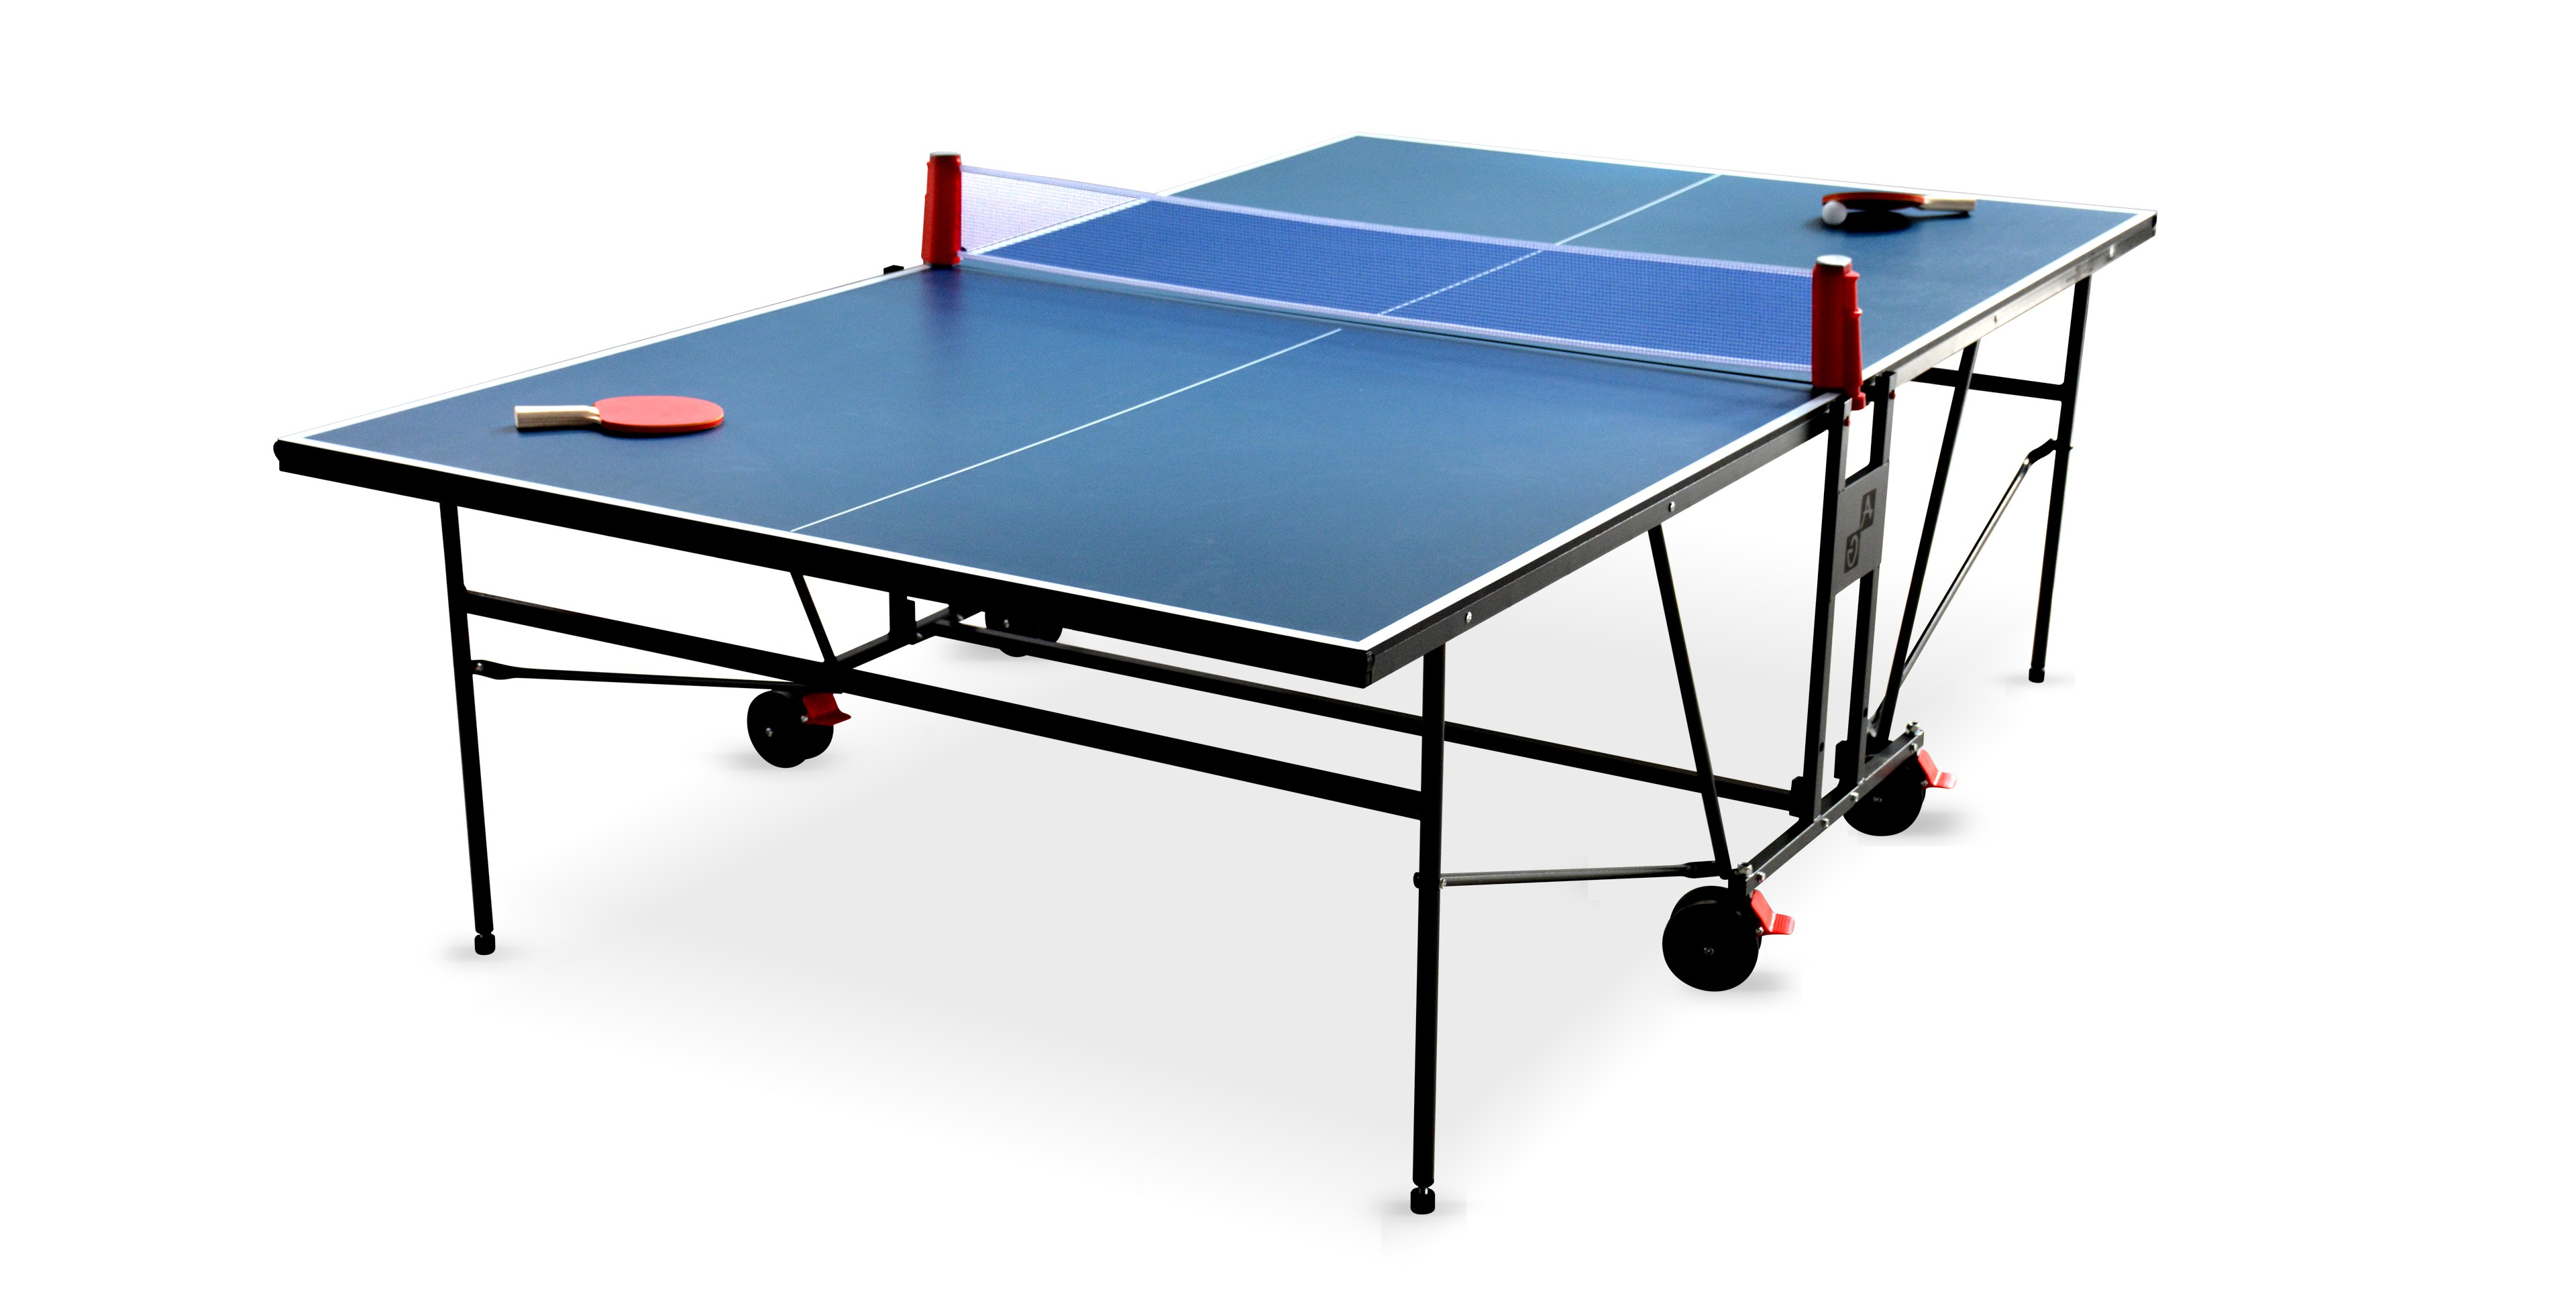 Solde Table De Ping Pong Table De Ping Pong Exterieur Cornilleau Table 400m